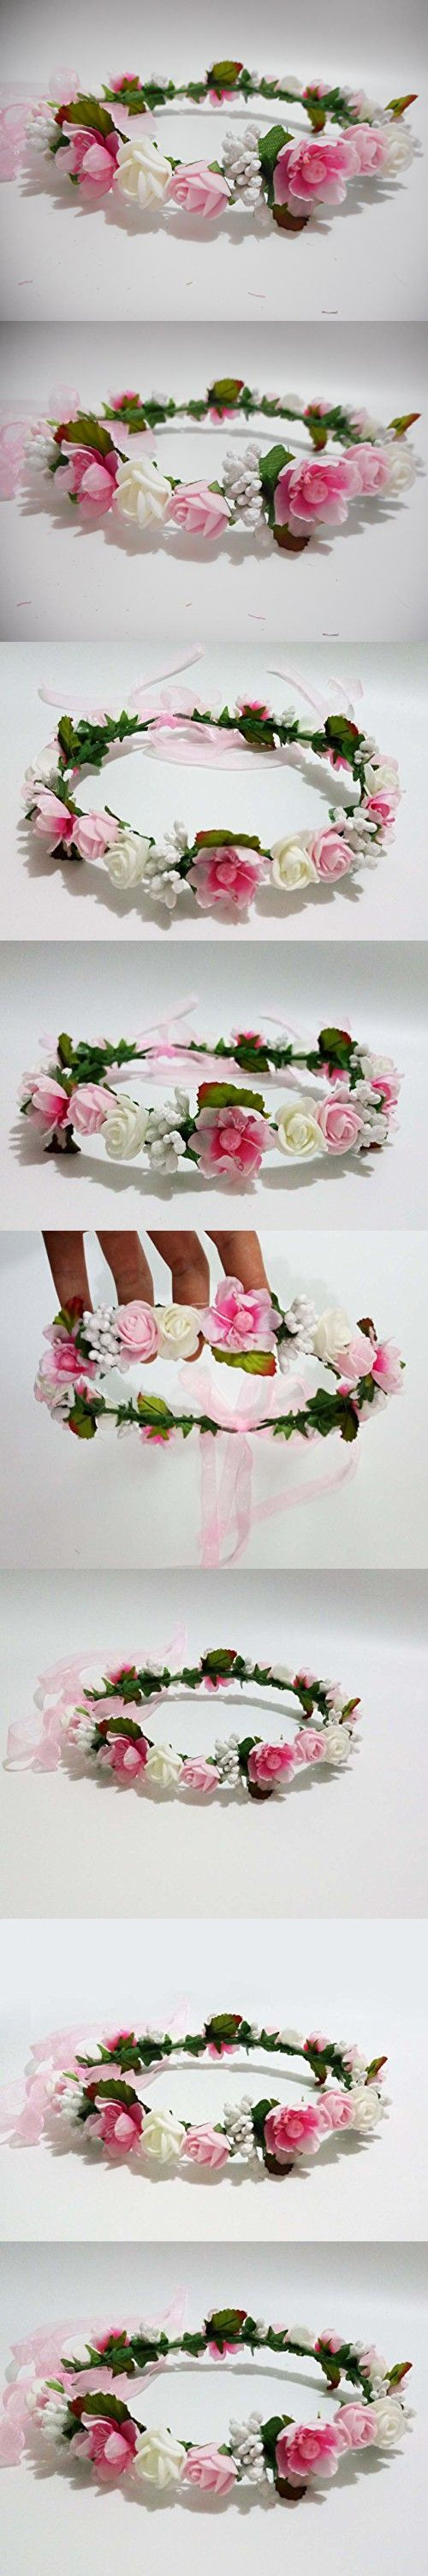 Hippy Decorative PE Foam Rose Flower Girl Crown Flowers Headband Wreath Garland Floral Headpieces Hippie Wedding Hair Band Piece Accessories for Brides Pink and White